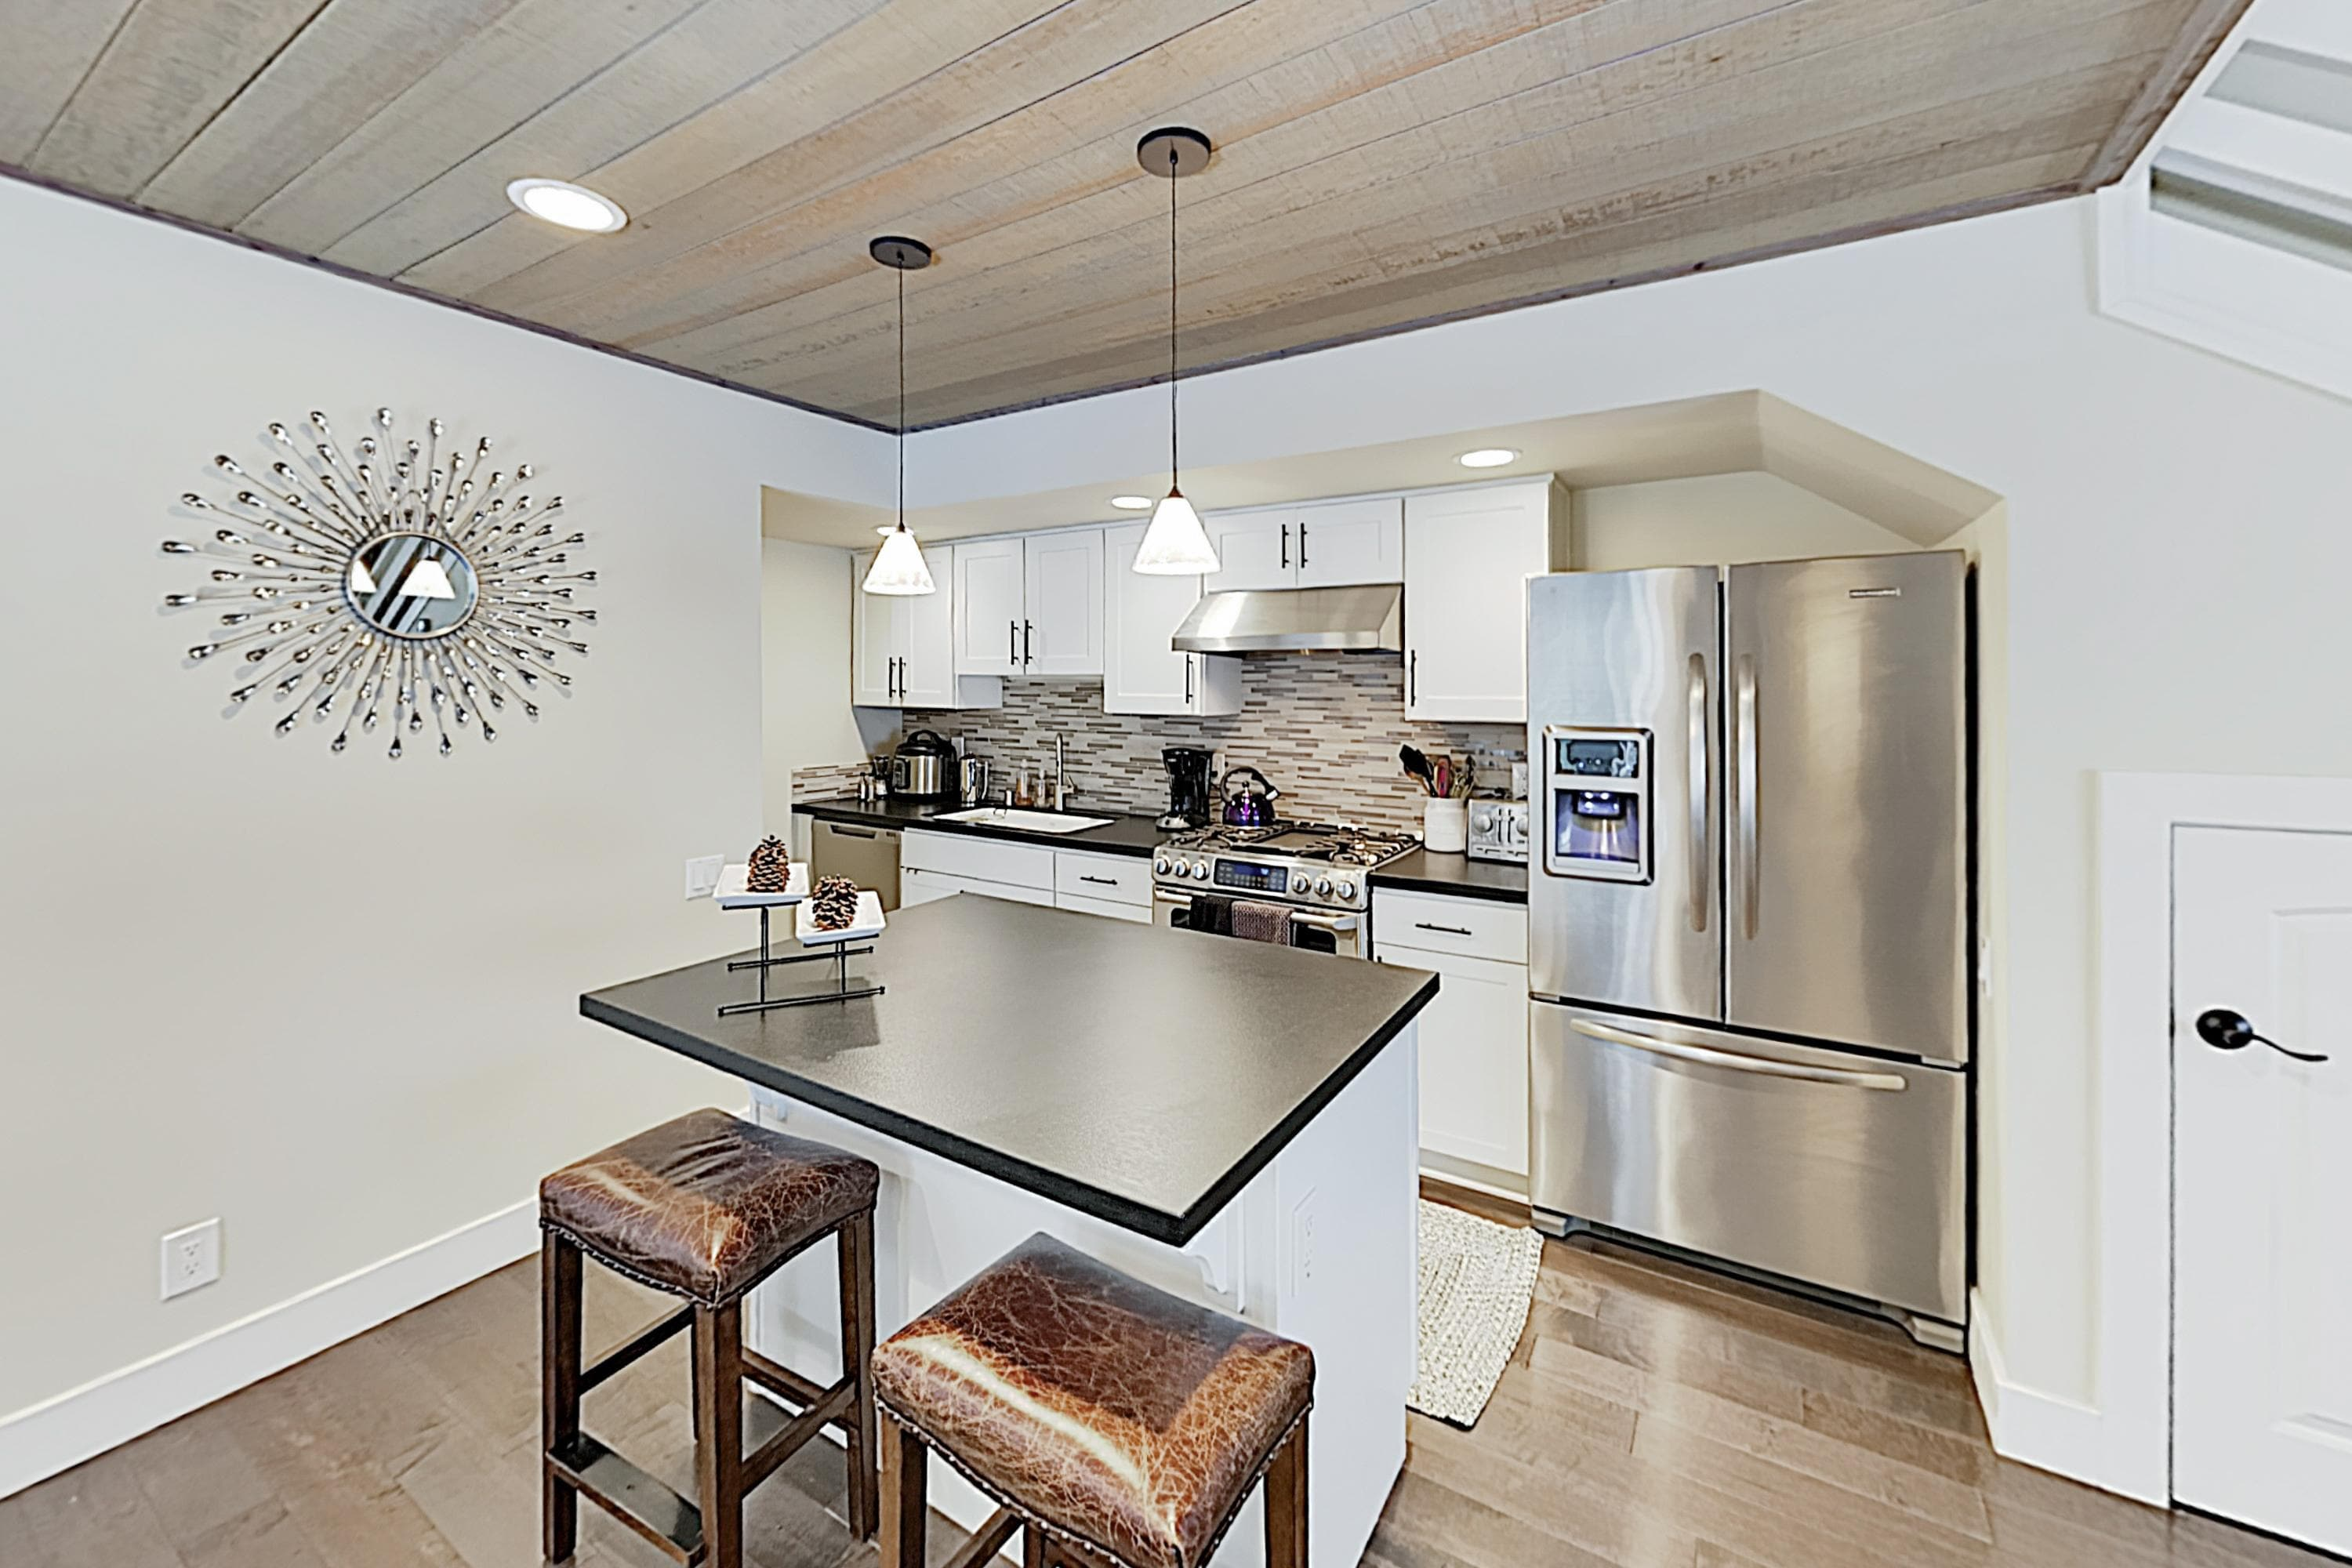 Whip up delectable creations in the well-appointed kitchen, equipped with a full suite of stainless steel appliances.